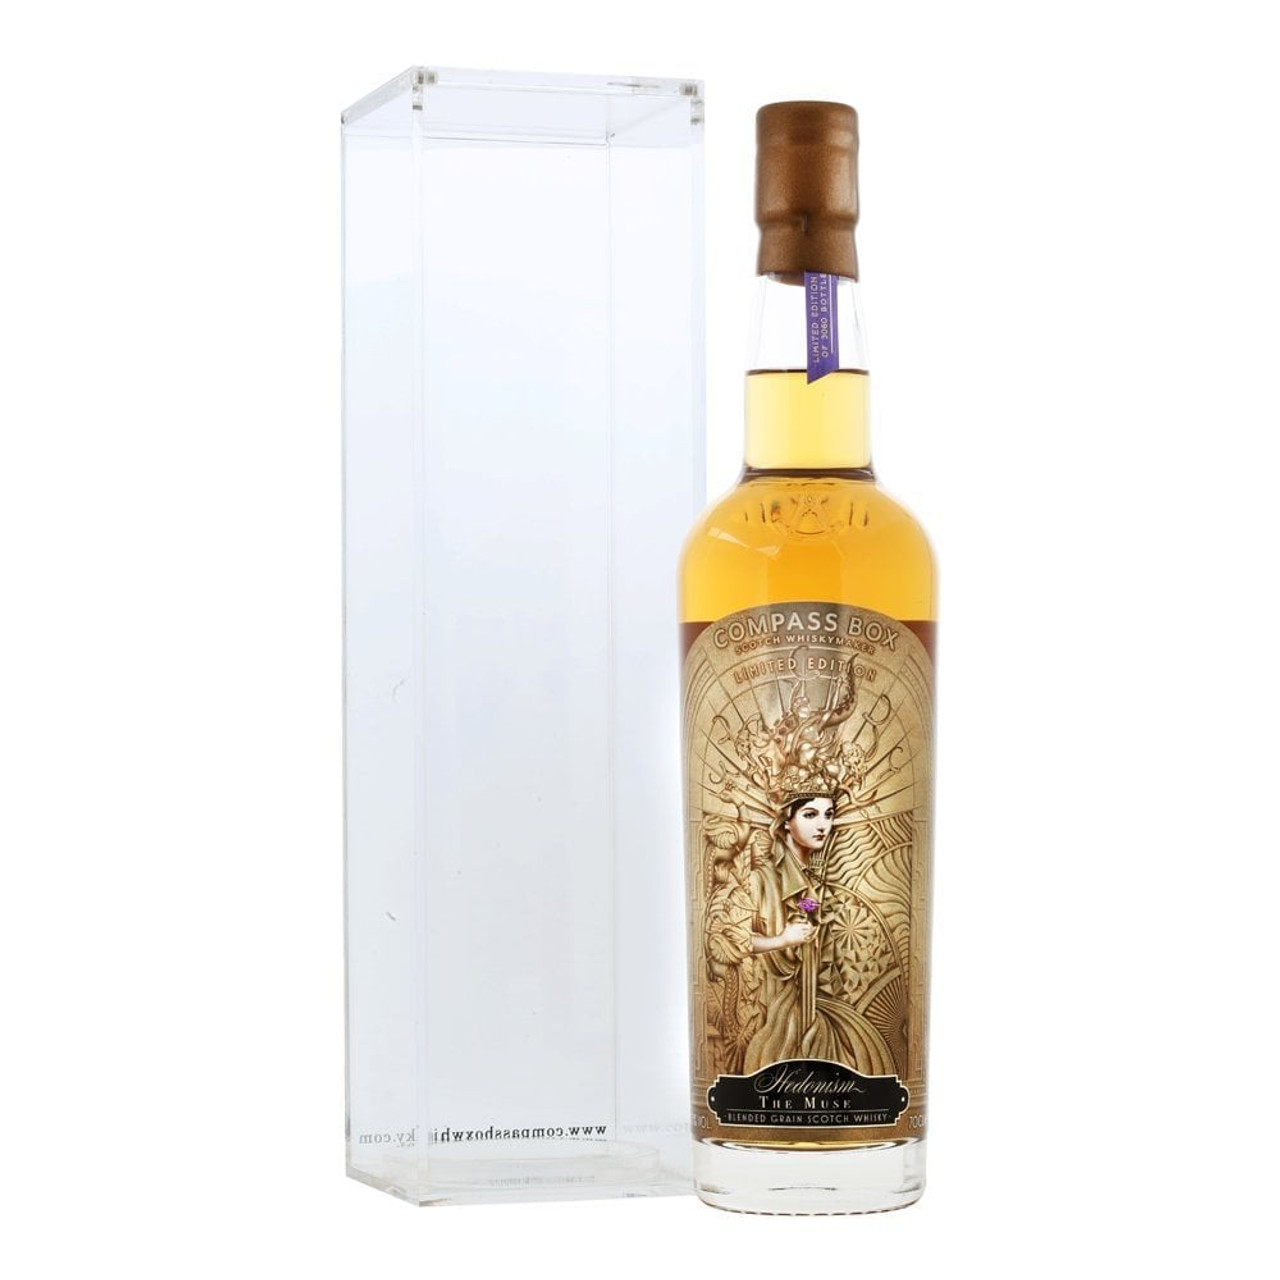 A limited edition version of Compass Box's excellent Hedonism, bottled to celebrate women in whisky – and that, for the first time, the company employs more women than men. The heart of this blended grain whisky is 'the muse cask', a butt discovered by Compass Box that contained unknown, pre-blended whiskies matching the quality and flavour profile of a Hedonism whisky. It is honeyed, spicy and fruity, with a notable presence of vanilla. Try pairing it with salted caramel.  Hedonism was Compass Box's inaugural bottling in 2000 and is thought to have been the first whisky with a woman on the label. The lead blender on the project was Jill Boyd, Compass Box's first female whisky blender.